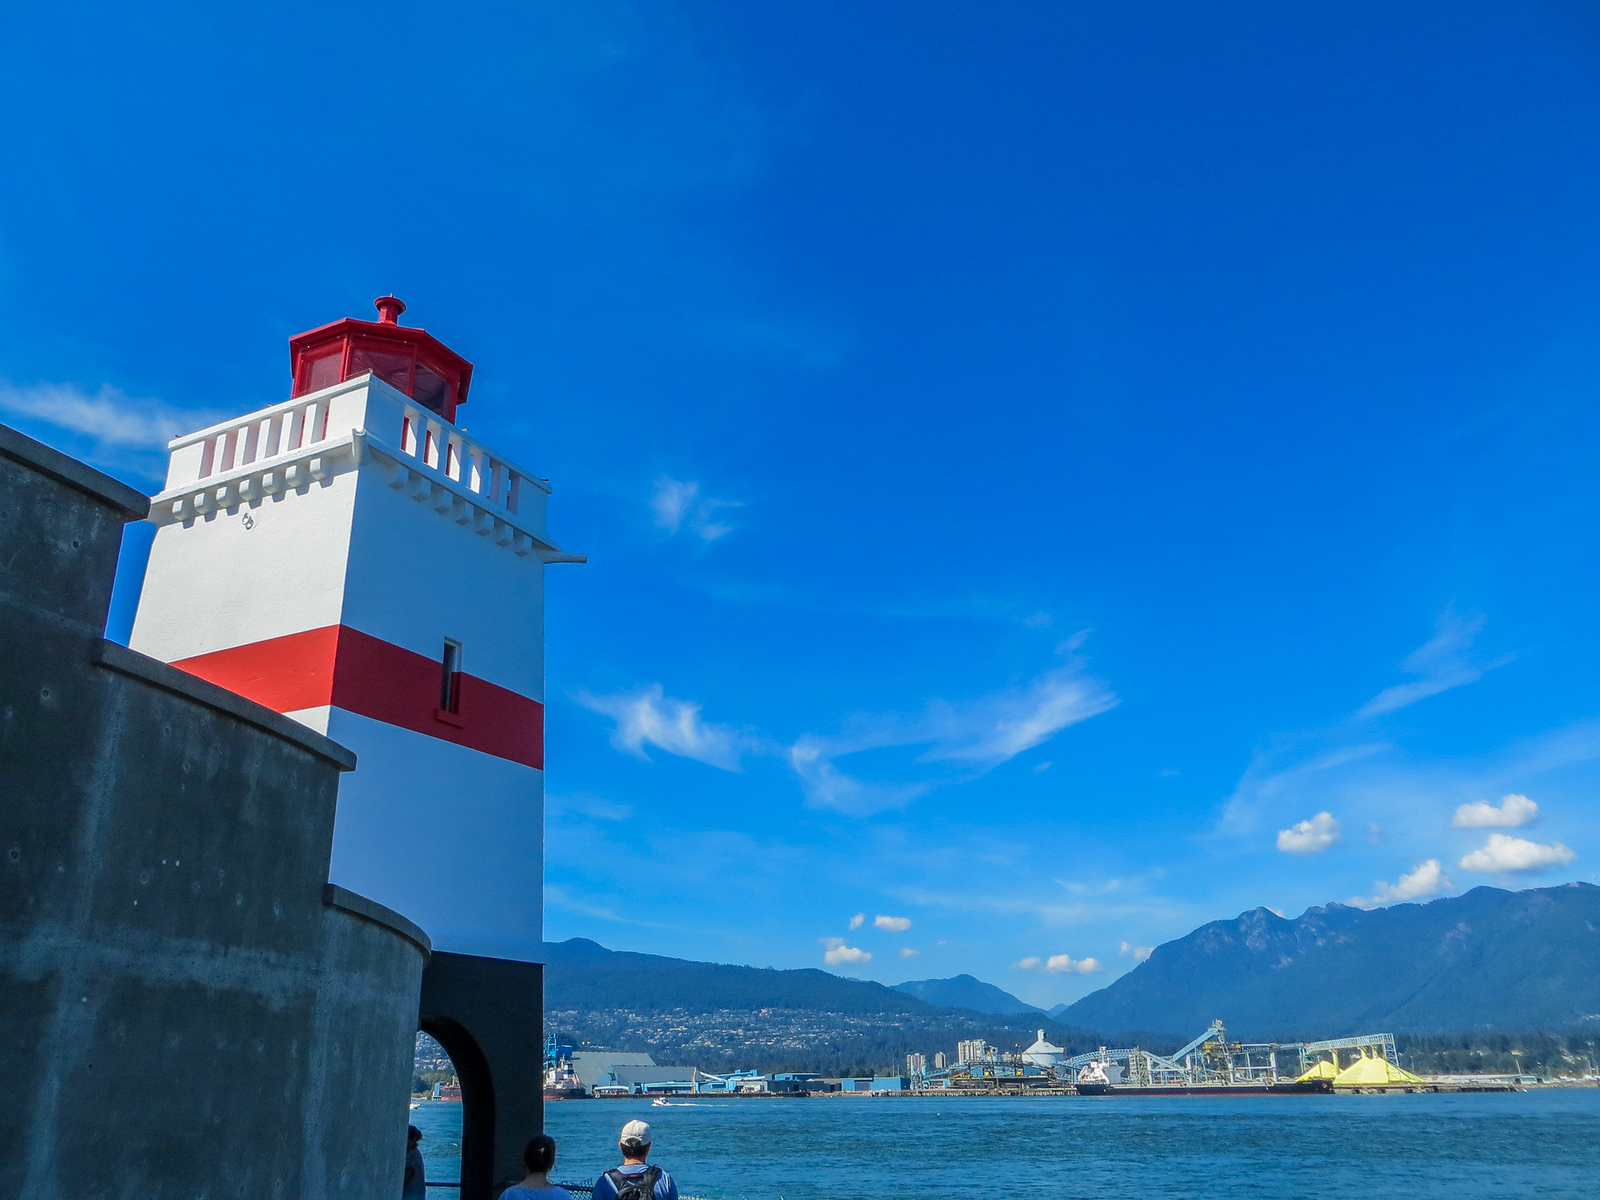 enjoy your weekend getaway in vancouver!